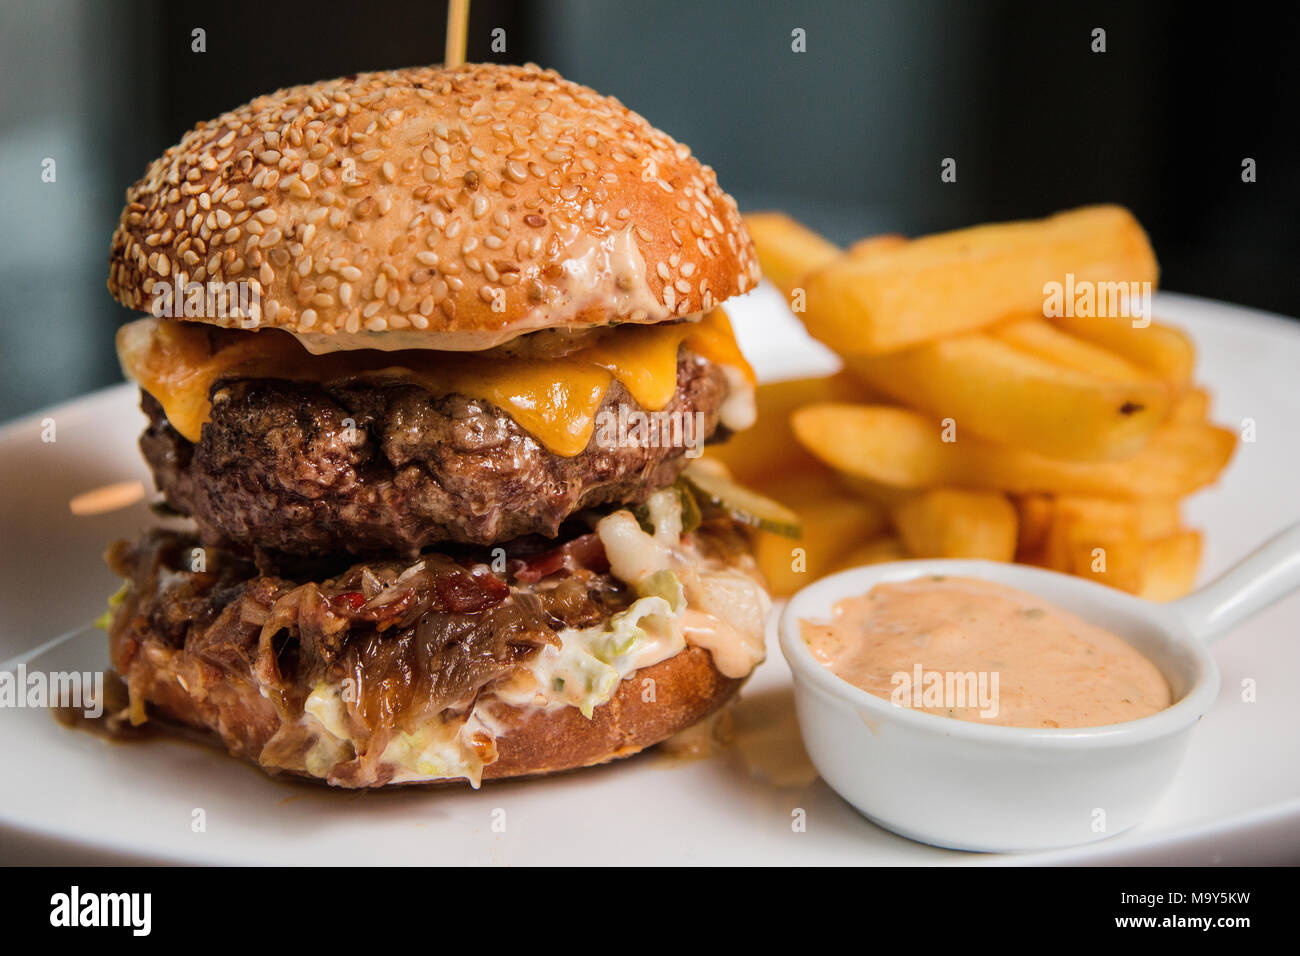 Close up of a tasty burger avec frites et sauce Photo Stock